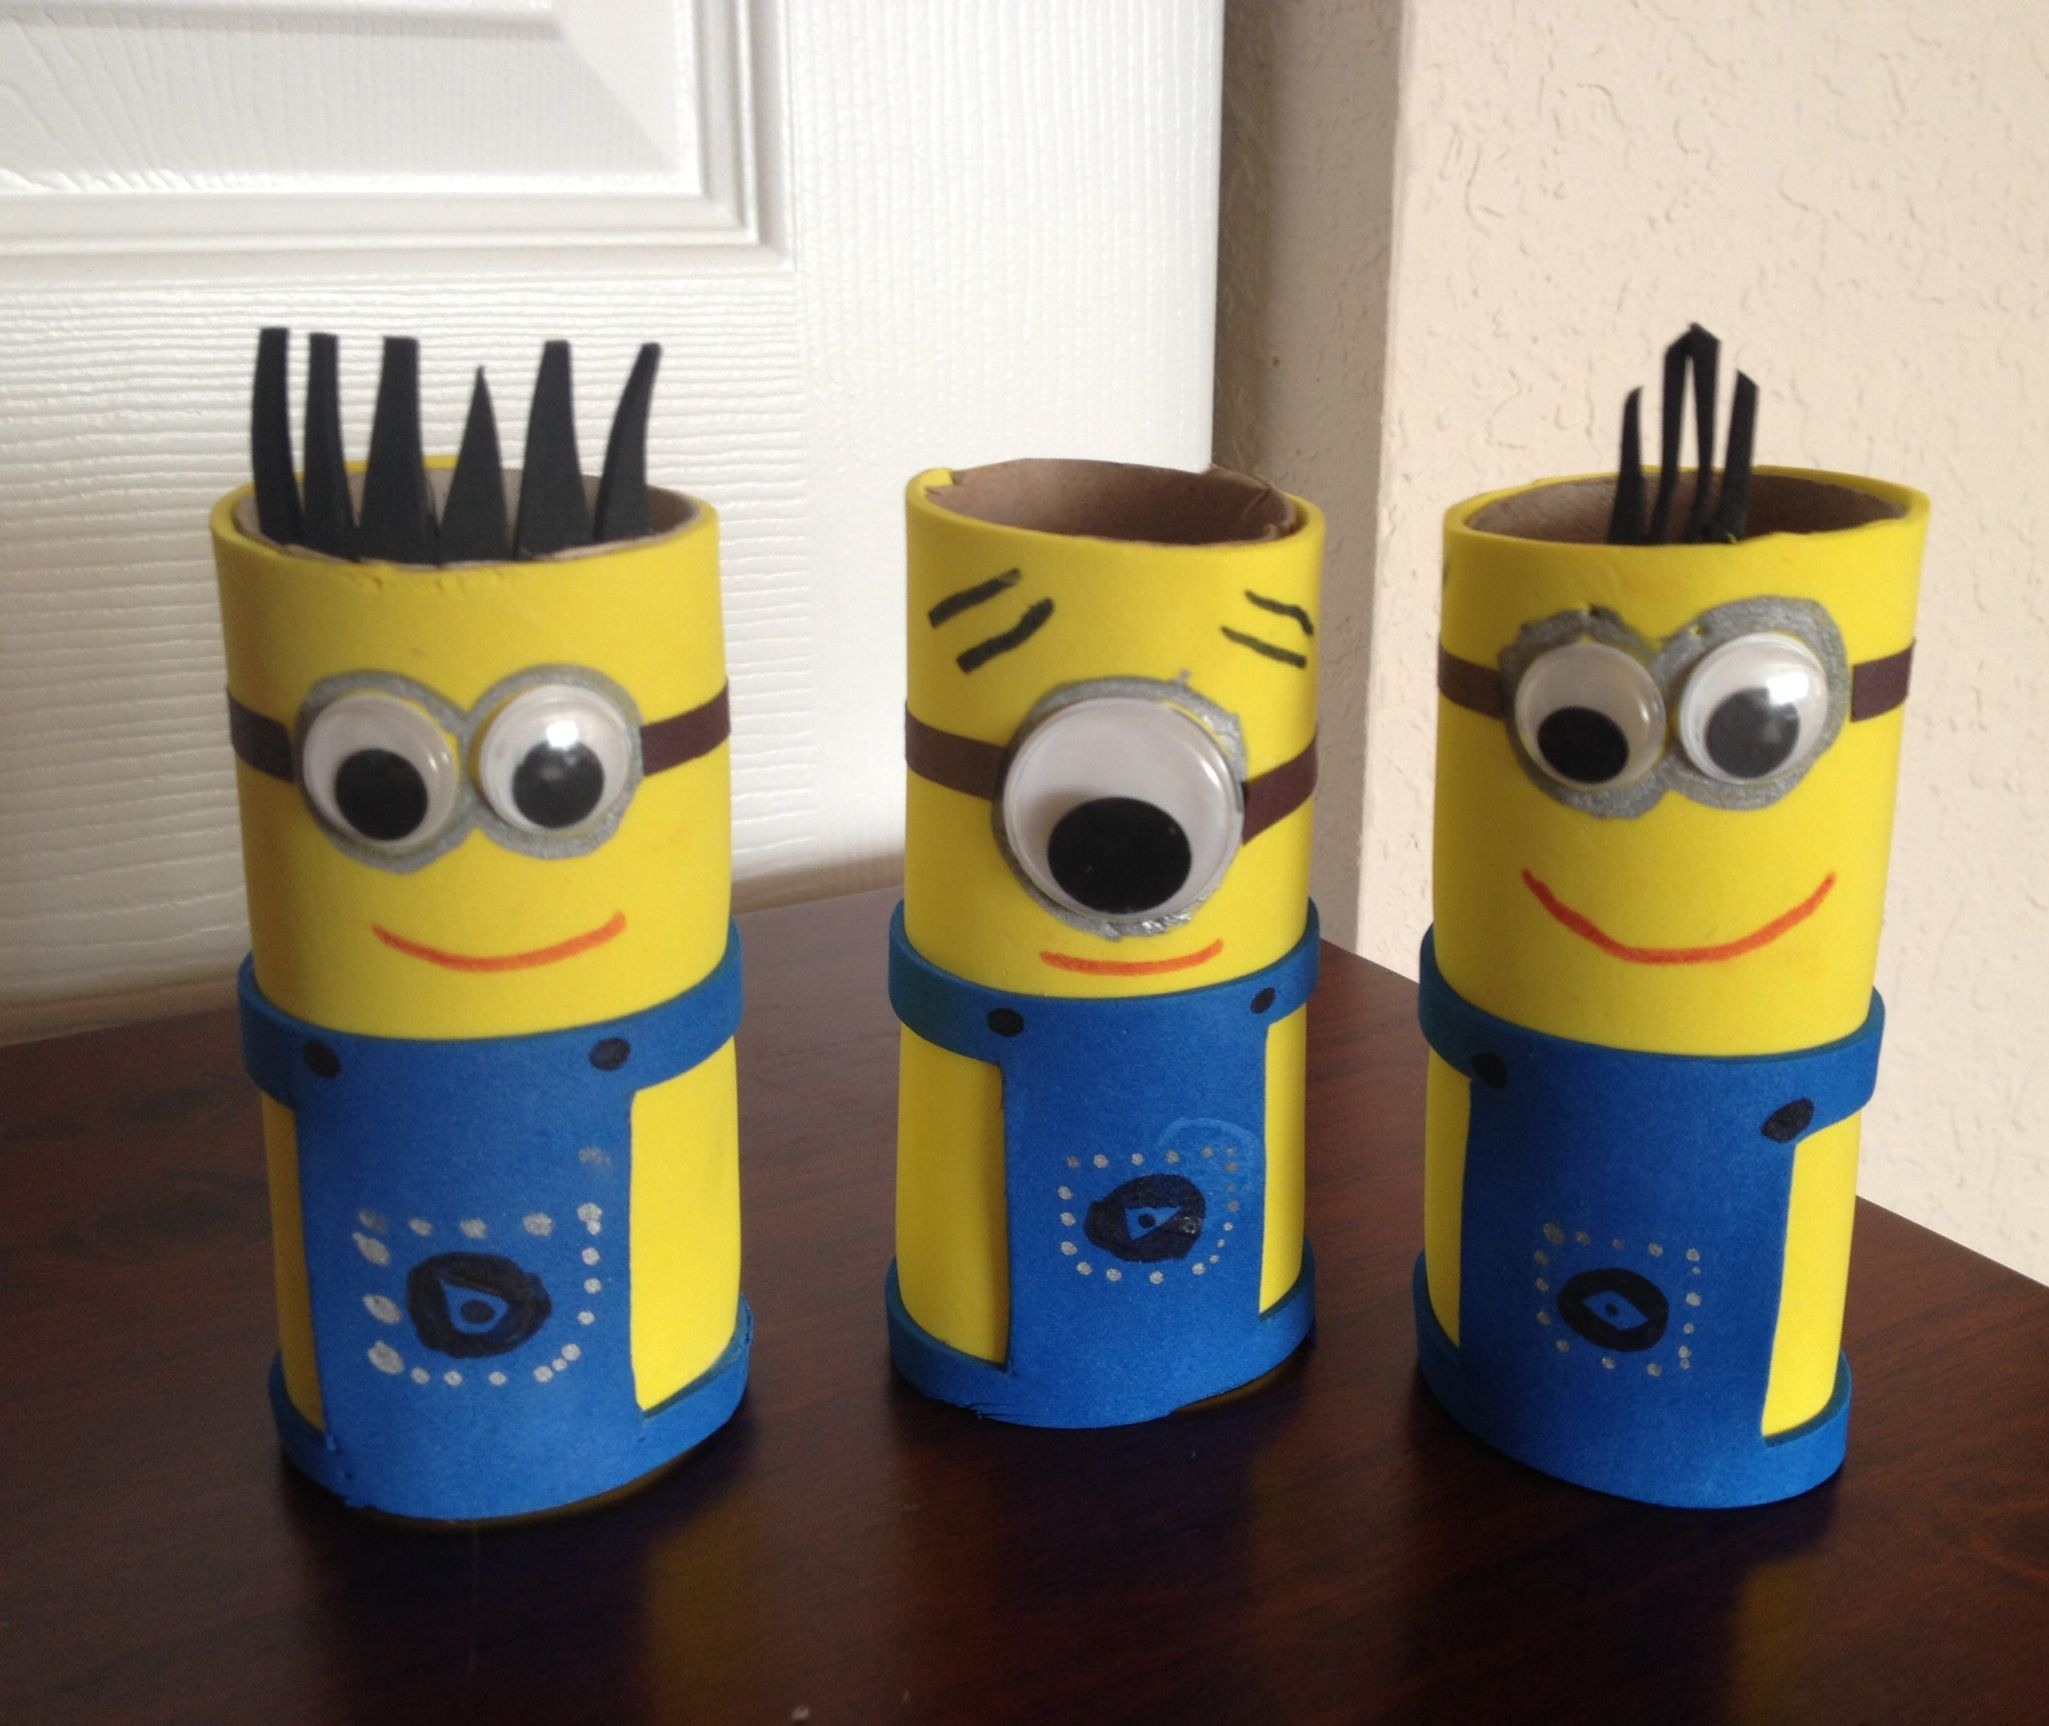 Minion Toilet Paper Roll Anazhthsh Google Toilet Paper Rolls